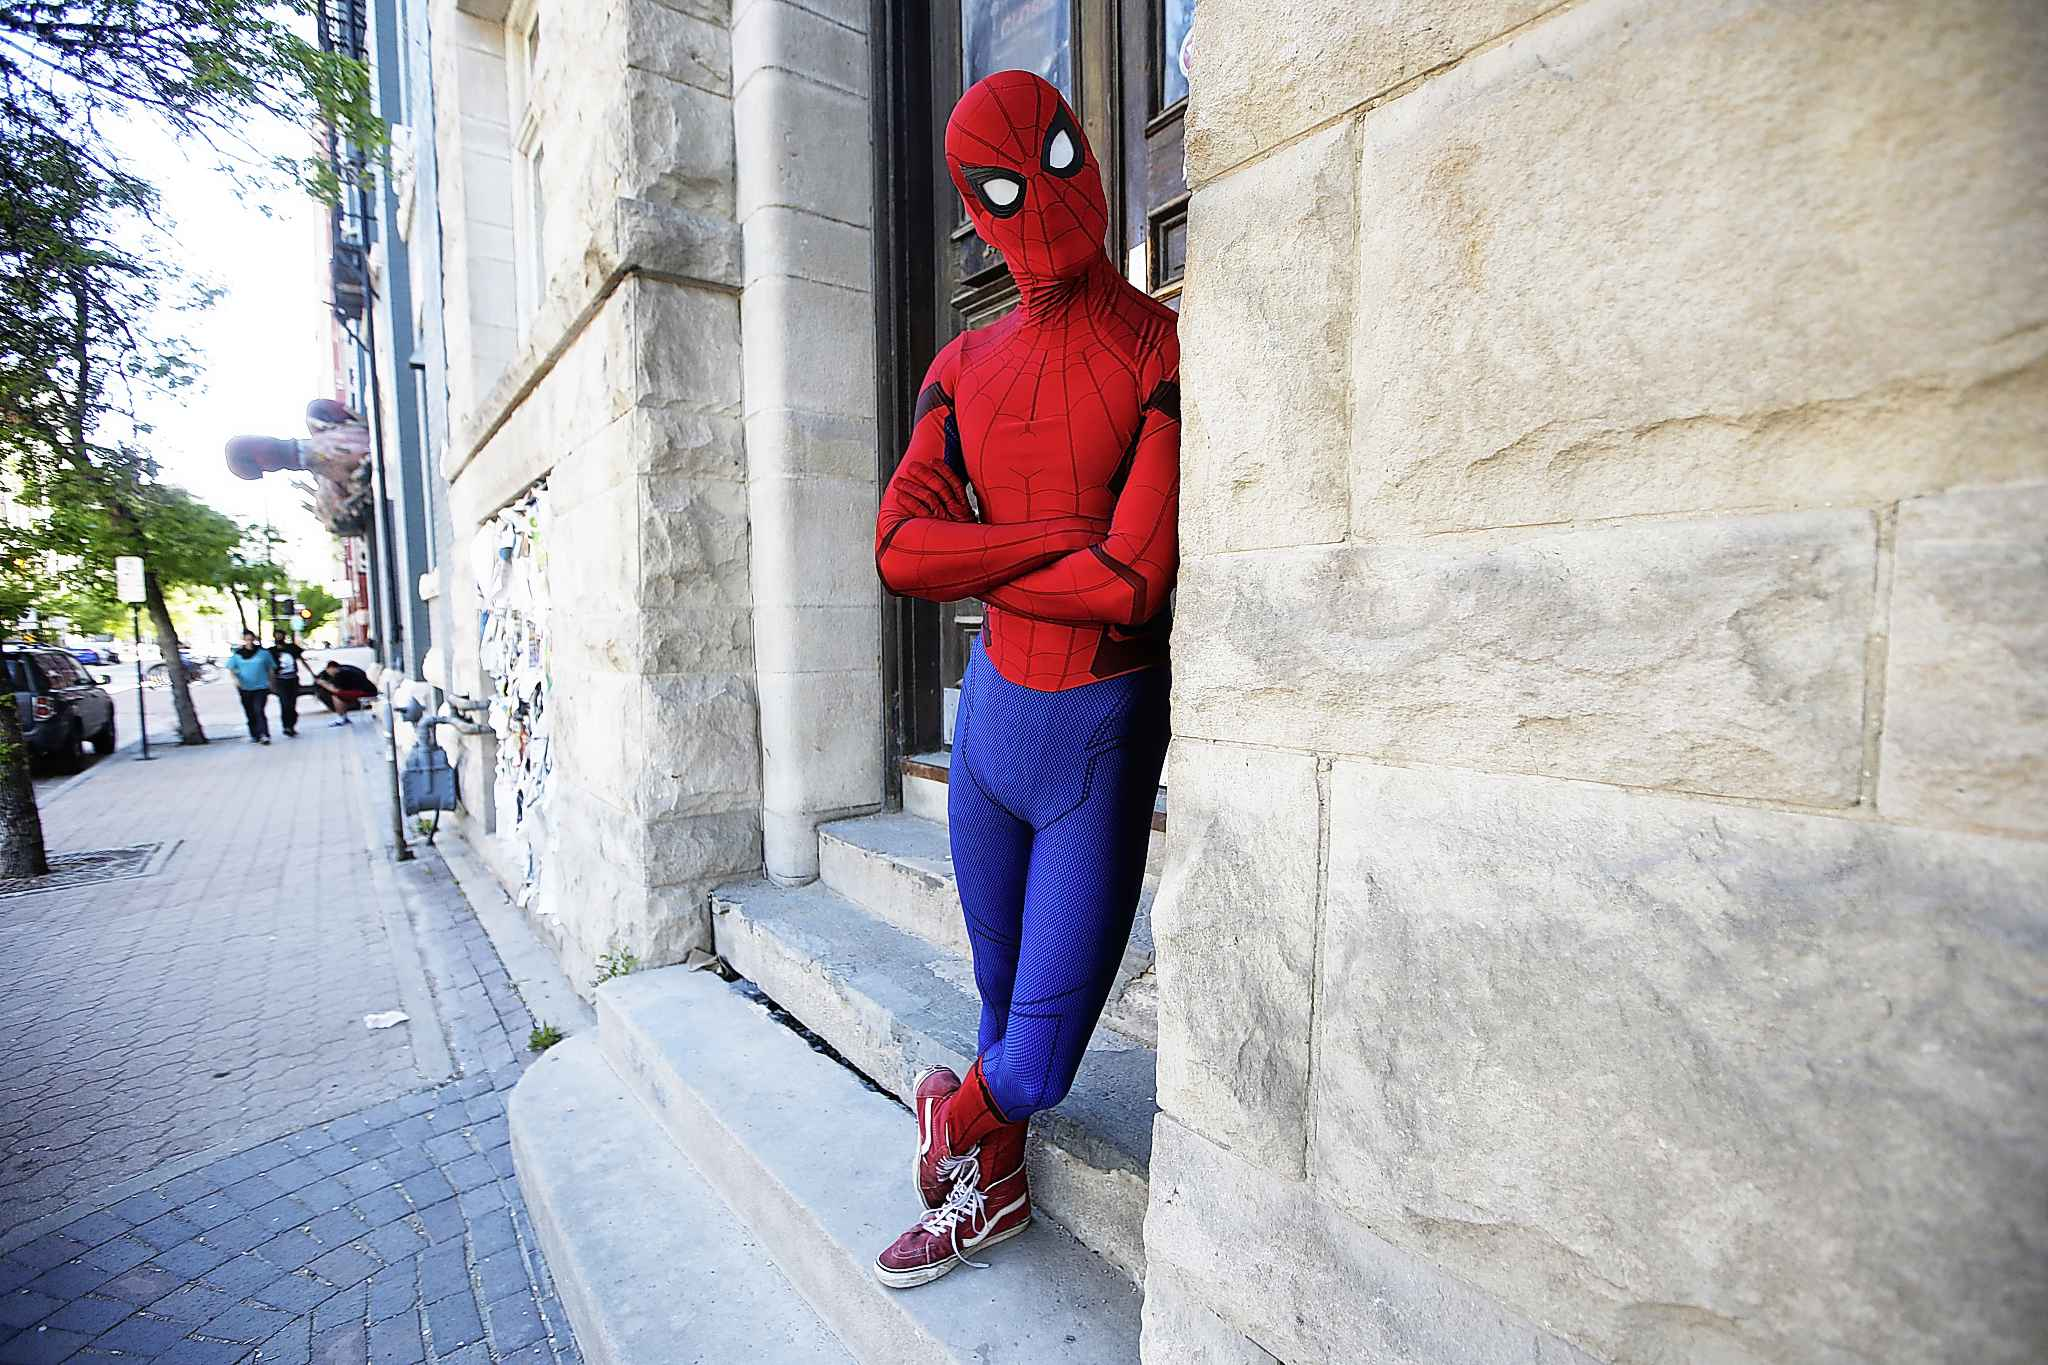 JOHN WOODS / WINNIPEG FREE PRESS</p><p>It started as a lark, but now he makes his rounds as Spider-Man. Sorry J. Jonah Jameson, we're not revealing his identity for Daily Bugle readers.</p></p>